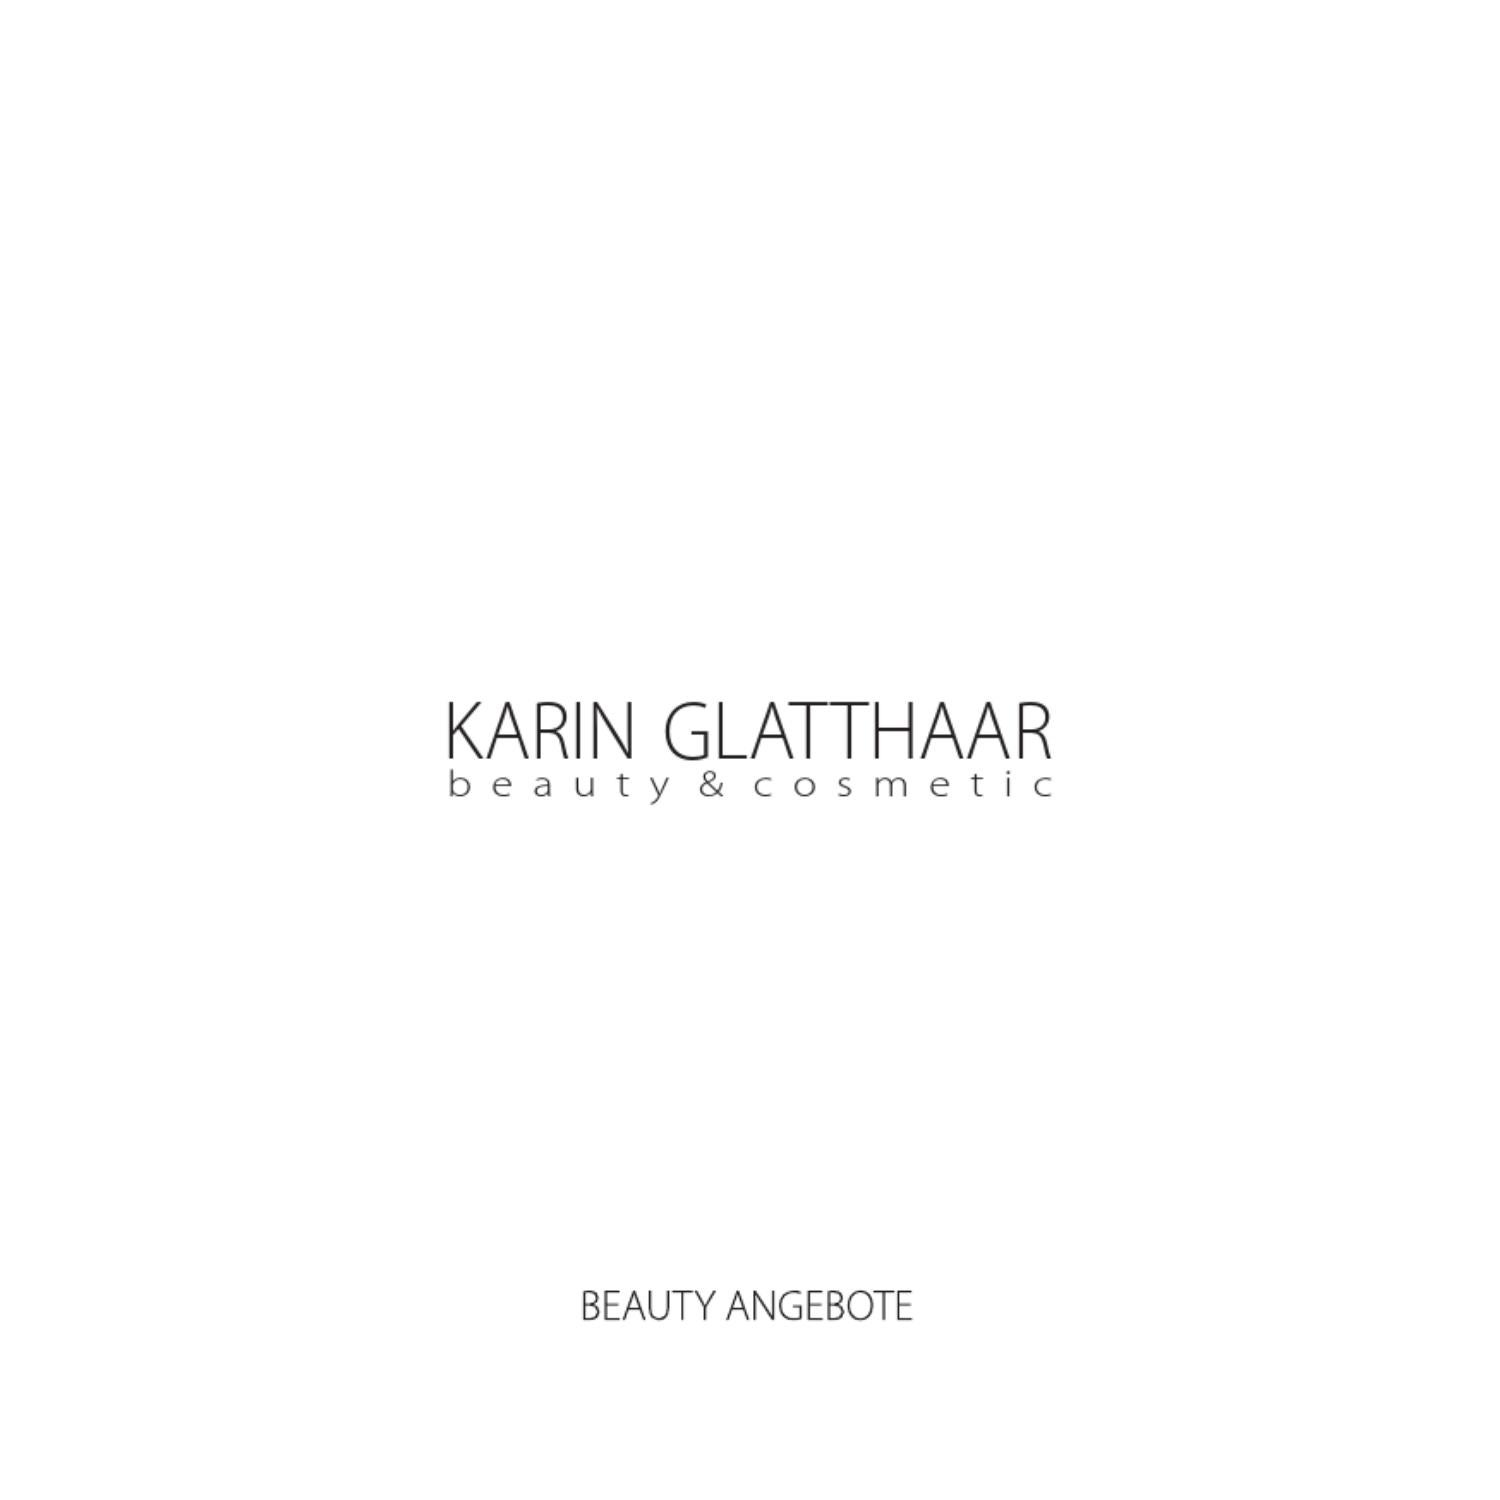 Glatthaar Karin Glatthaar Beauty Cosmetic By Glatthaar Media Issuu